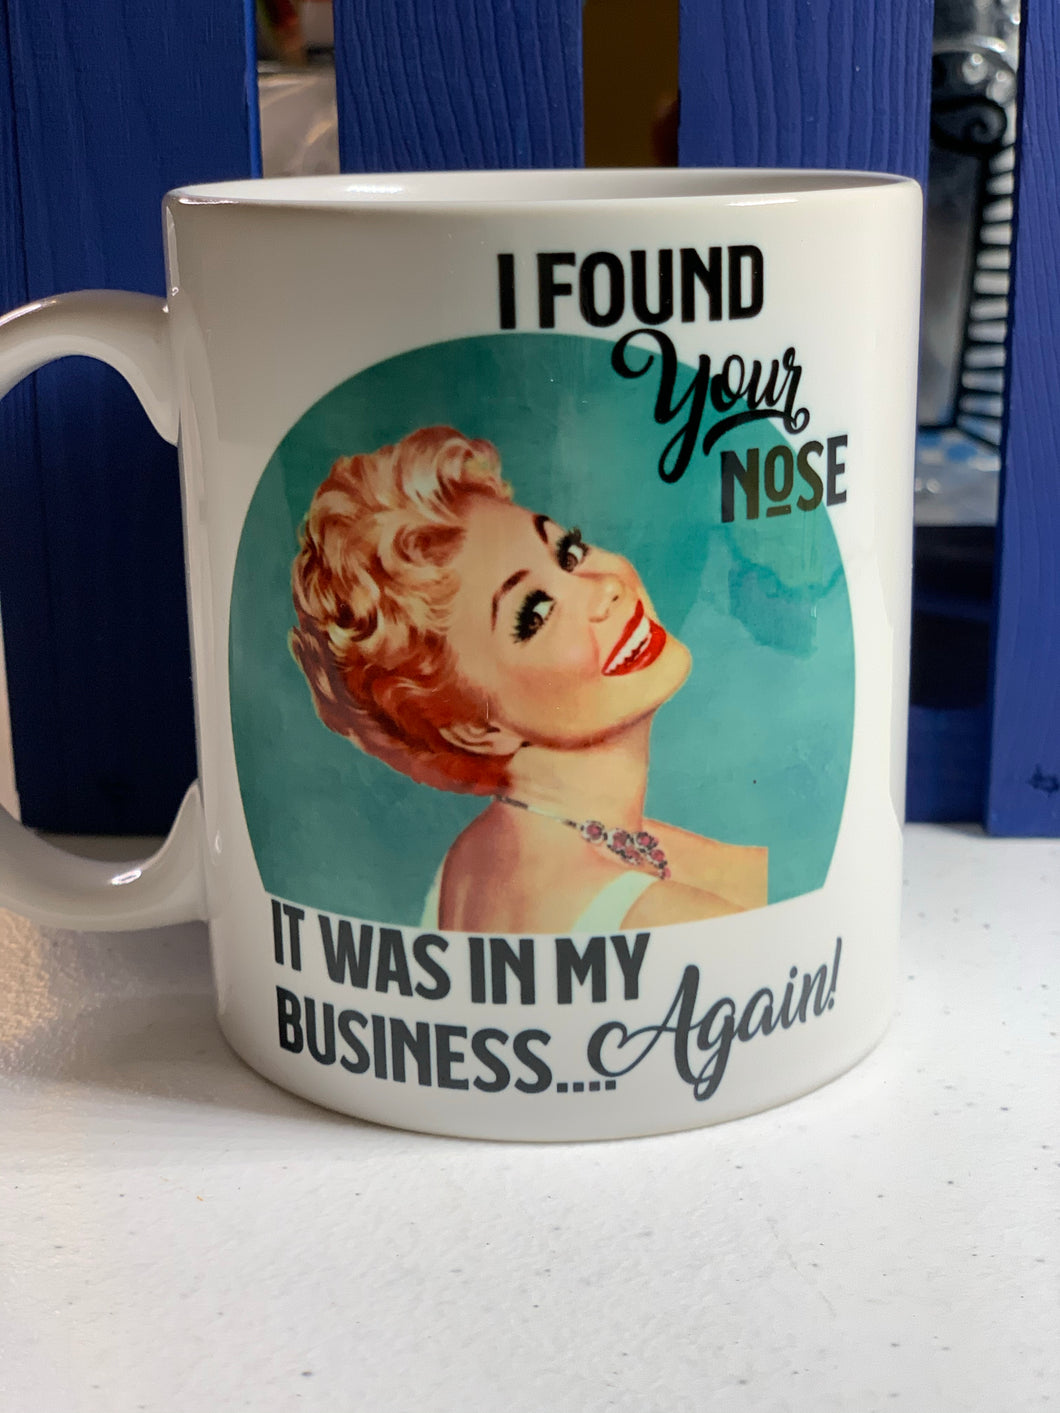 Your Nose is in my Business Again Ceramic Mug